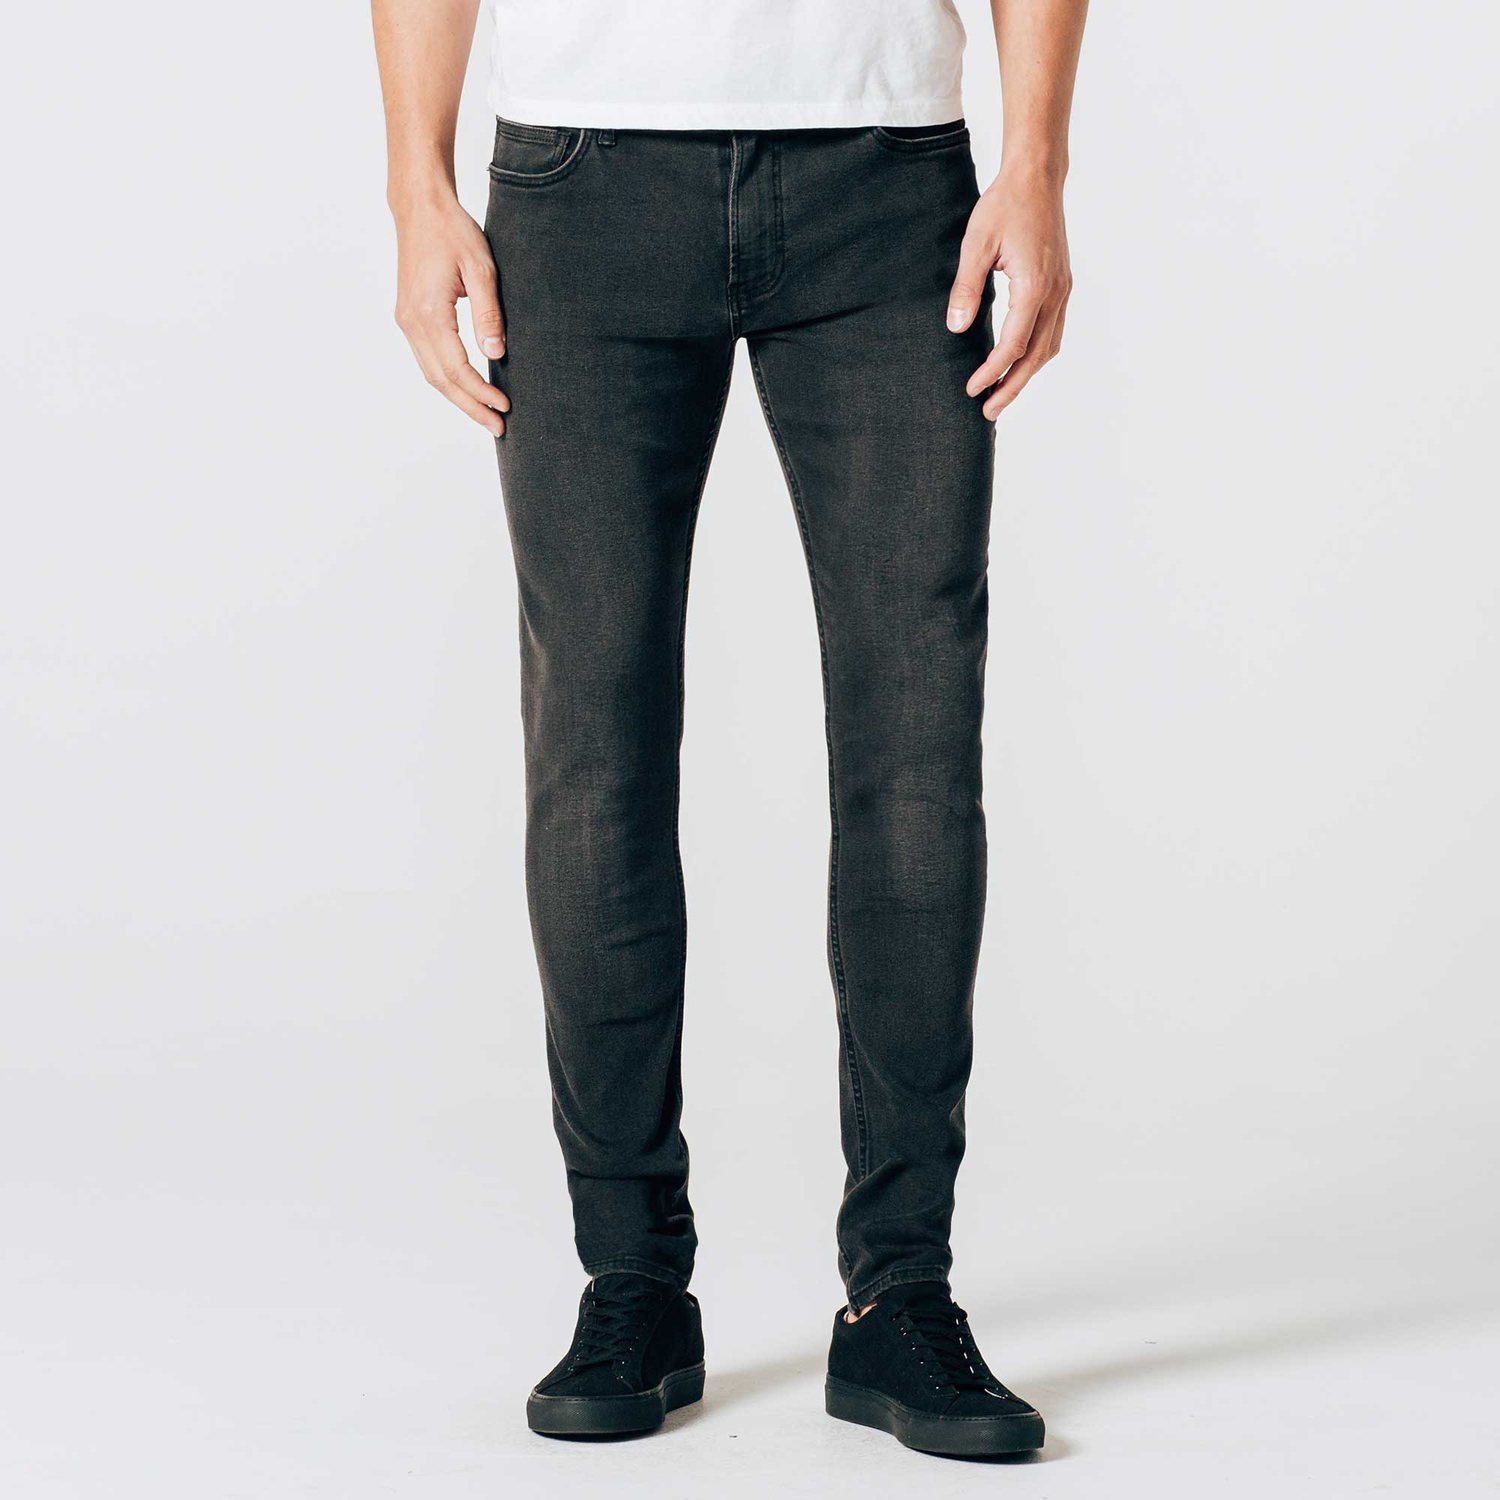 Channel your inner rockstar with a pair of black skinny jeans, teamed up with a white tee and a black leather jacket and boots. Business lunch? Smarten up things with dark blue jeans in slim fit and plain white Oxford shirt.